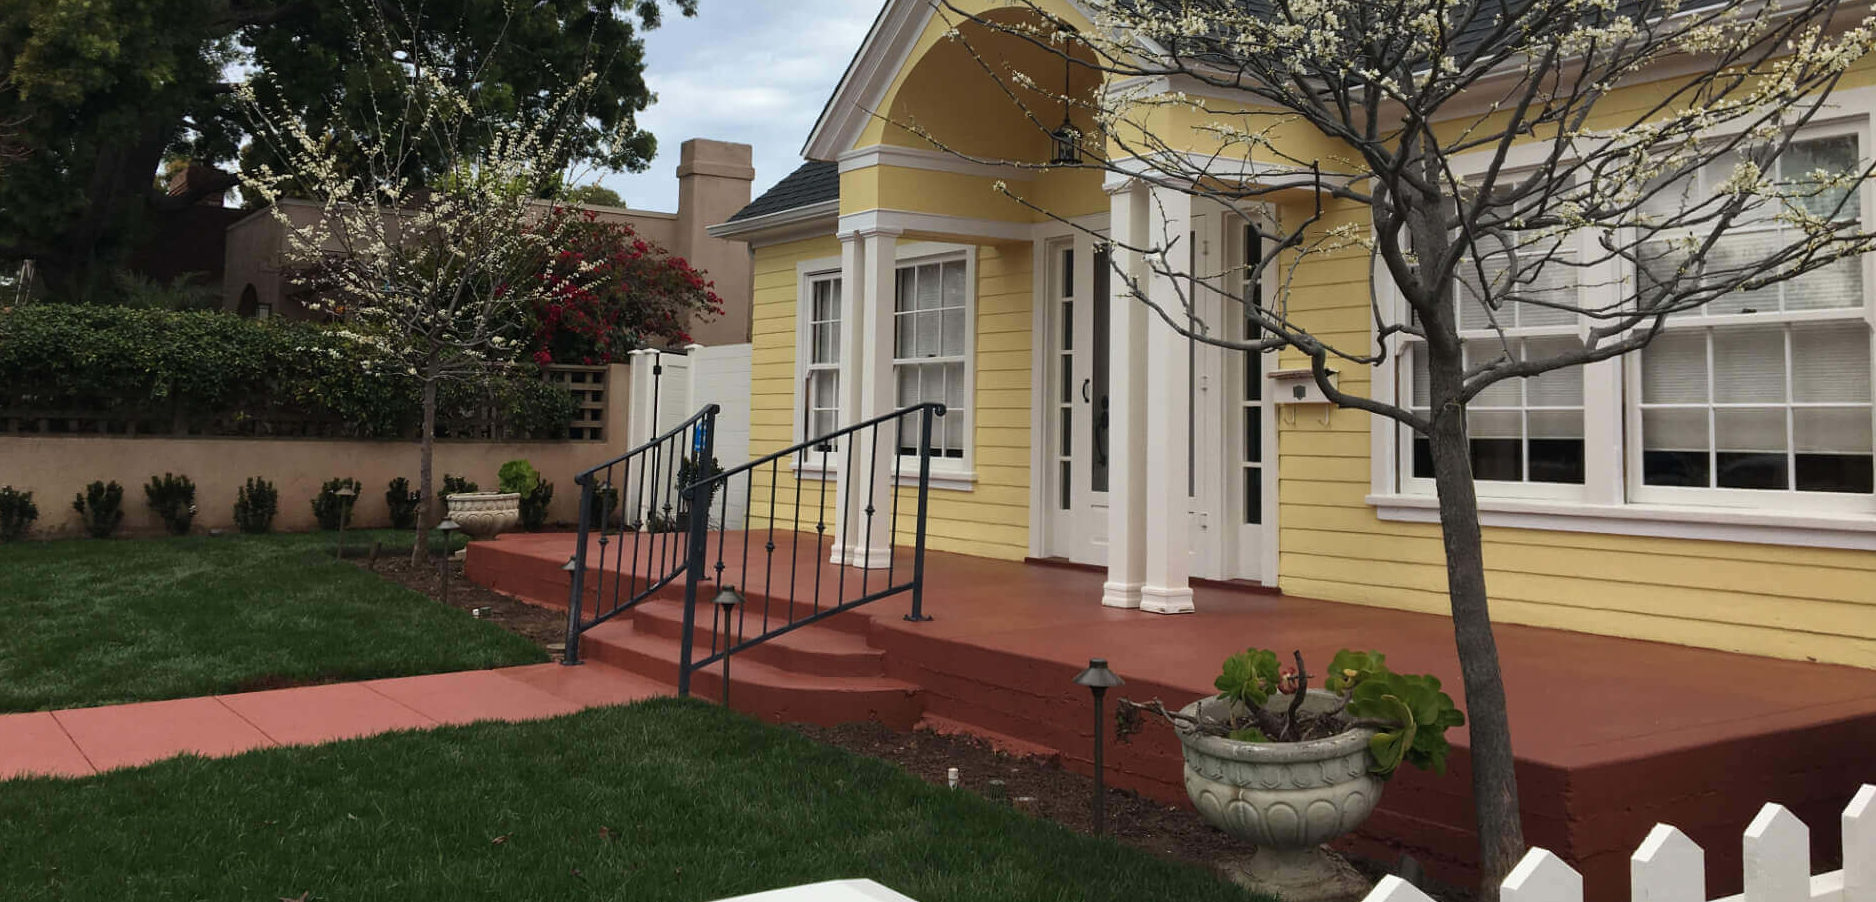 Can you believe it? This concrete started out as old, faded and mismatch! A beautiful historic restoration in Mission Hills, California needed a concrete remodel that was just as high quality and impeccable as the overall home restoration.